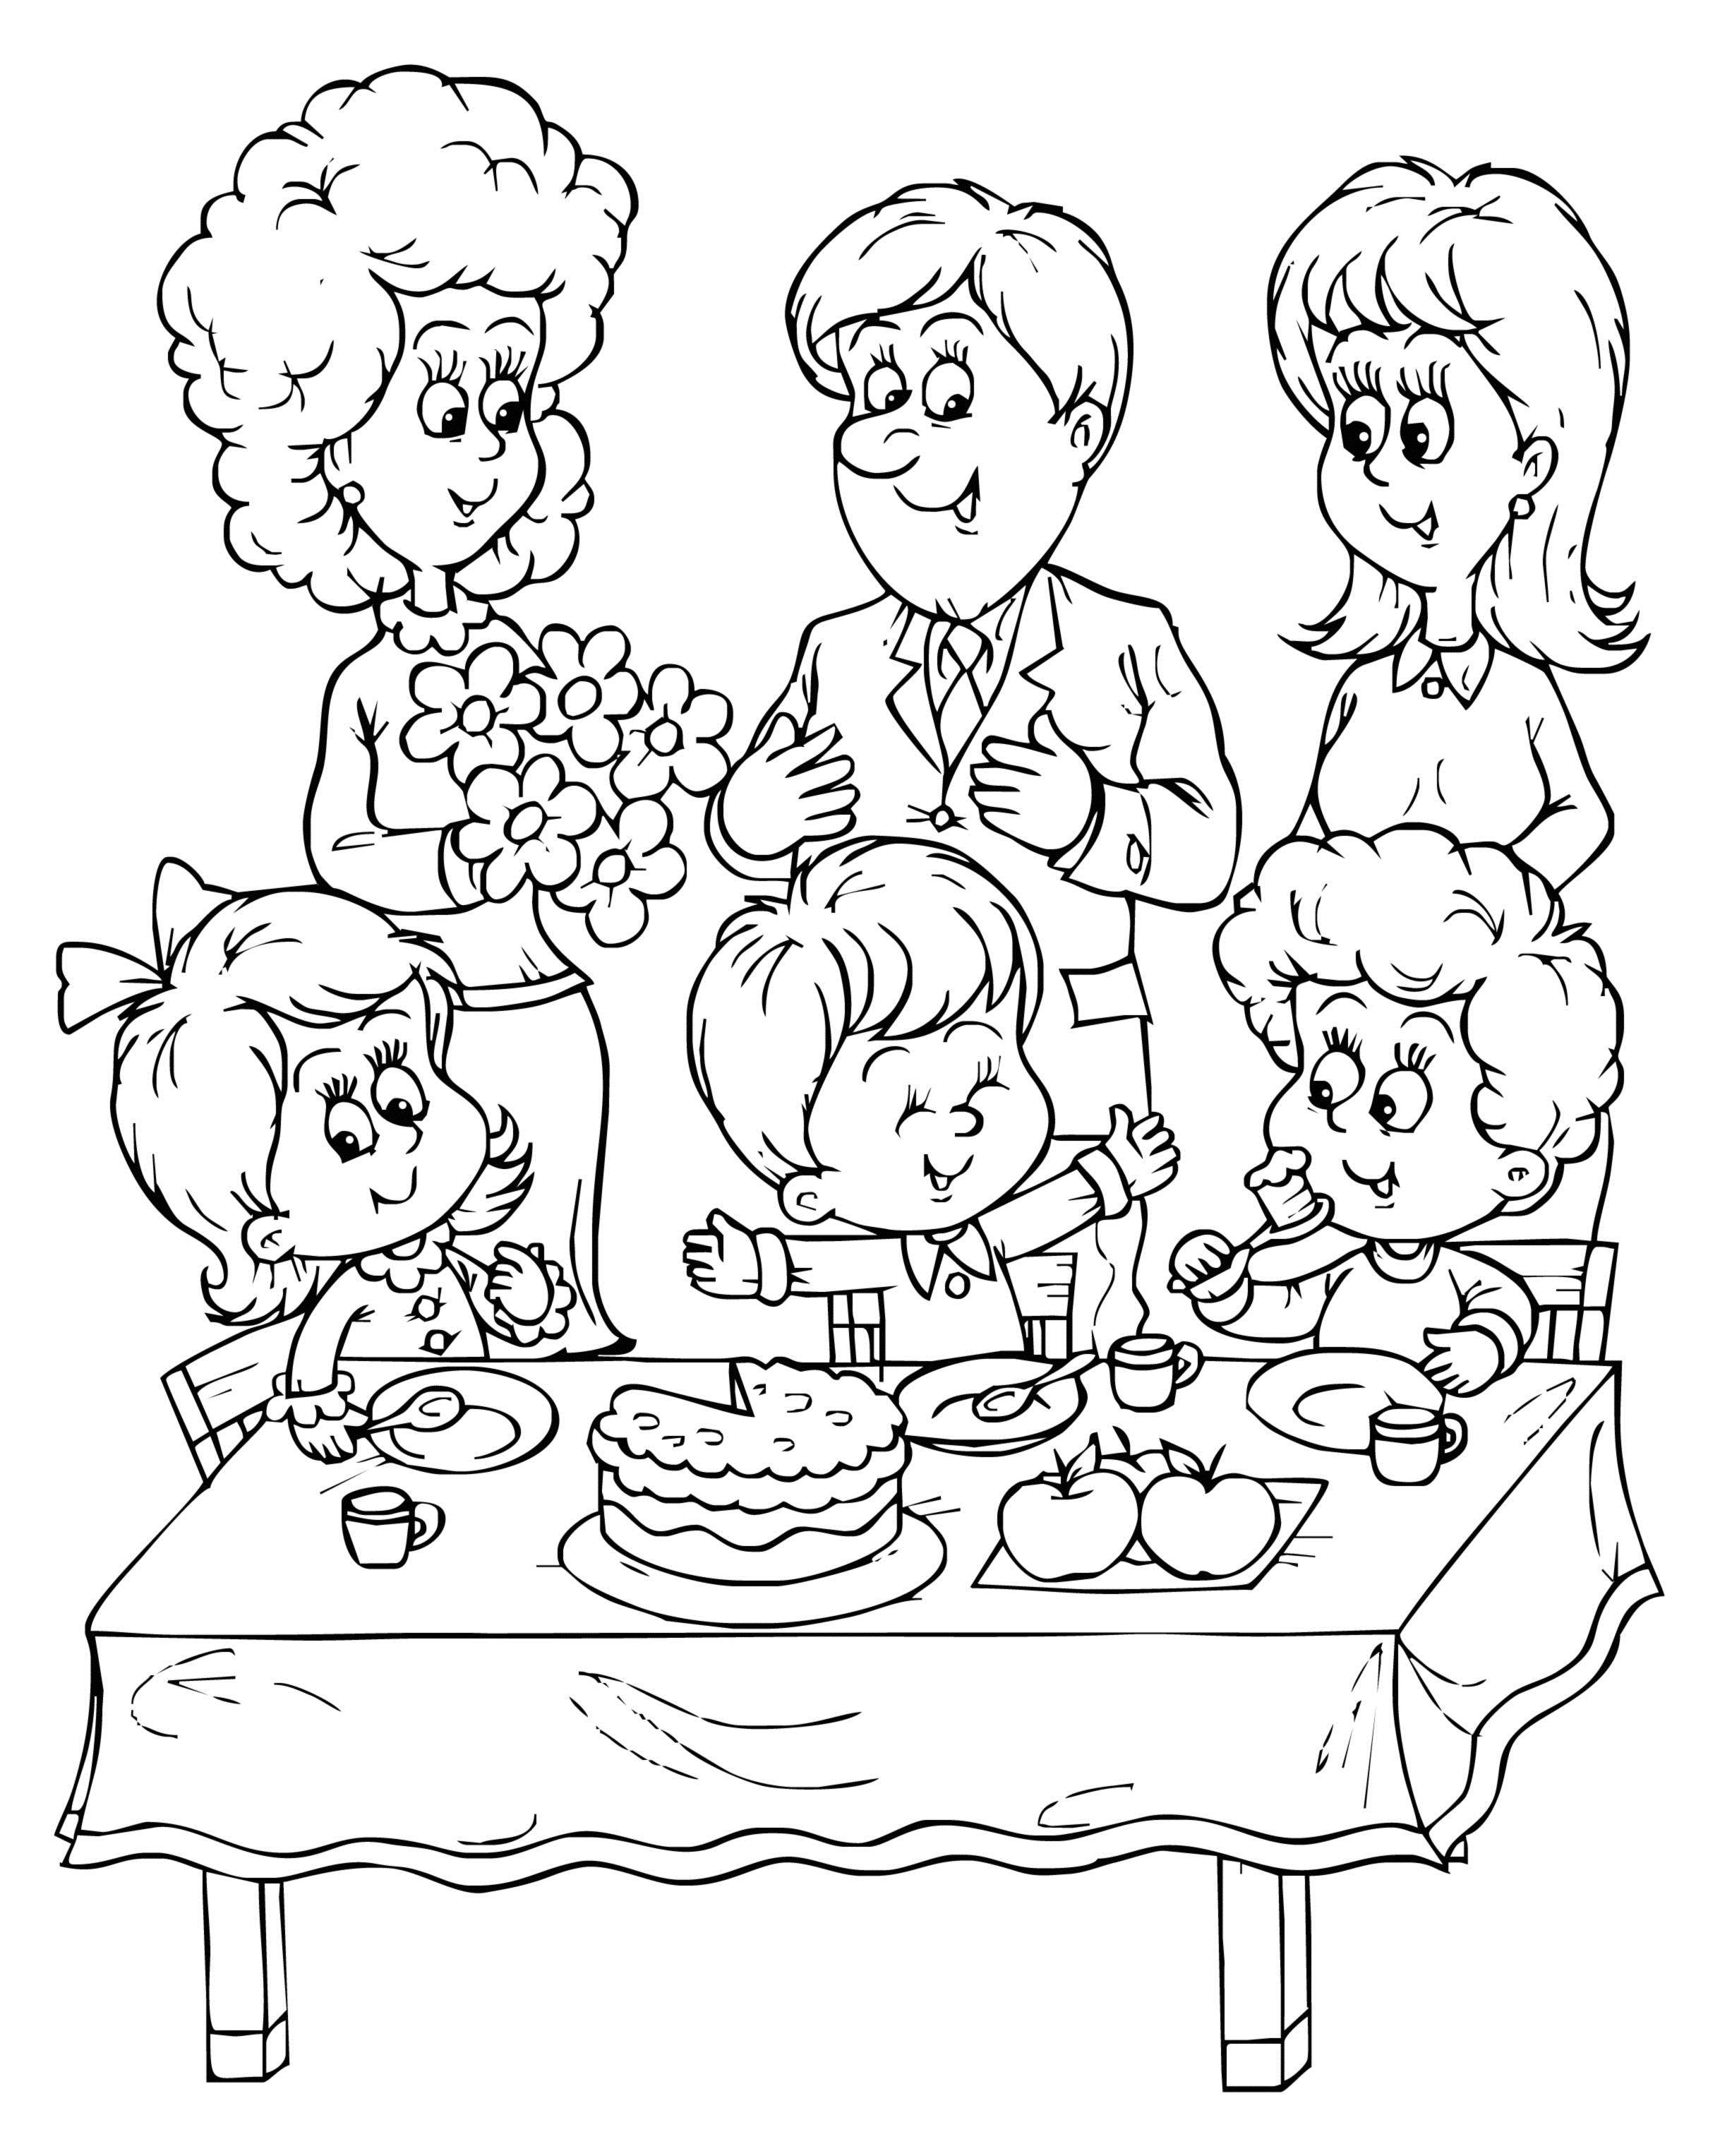 my birthday party drawing for kids ; happy-birthday-dad-coloring-pages-for-kids-006